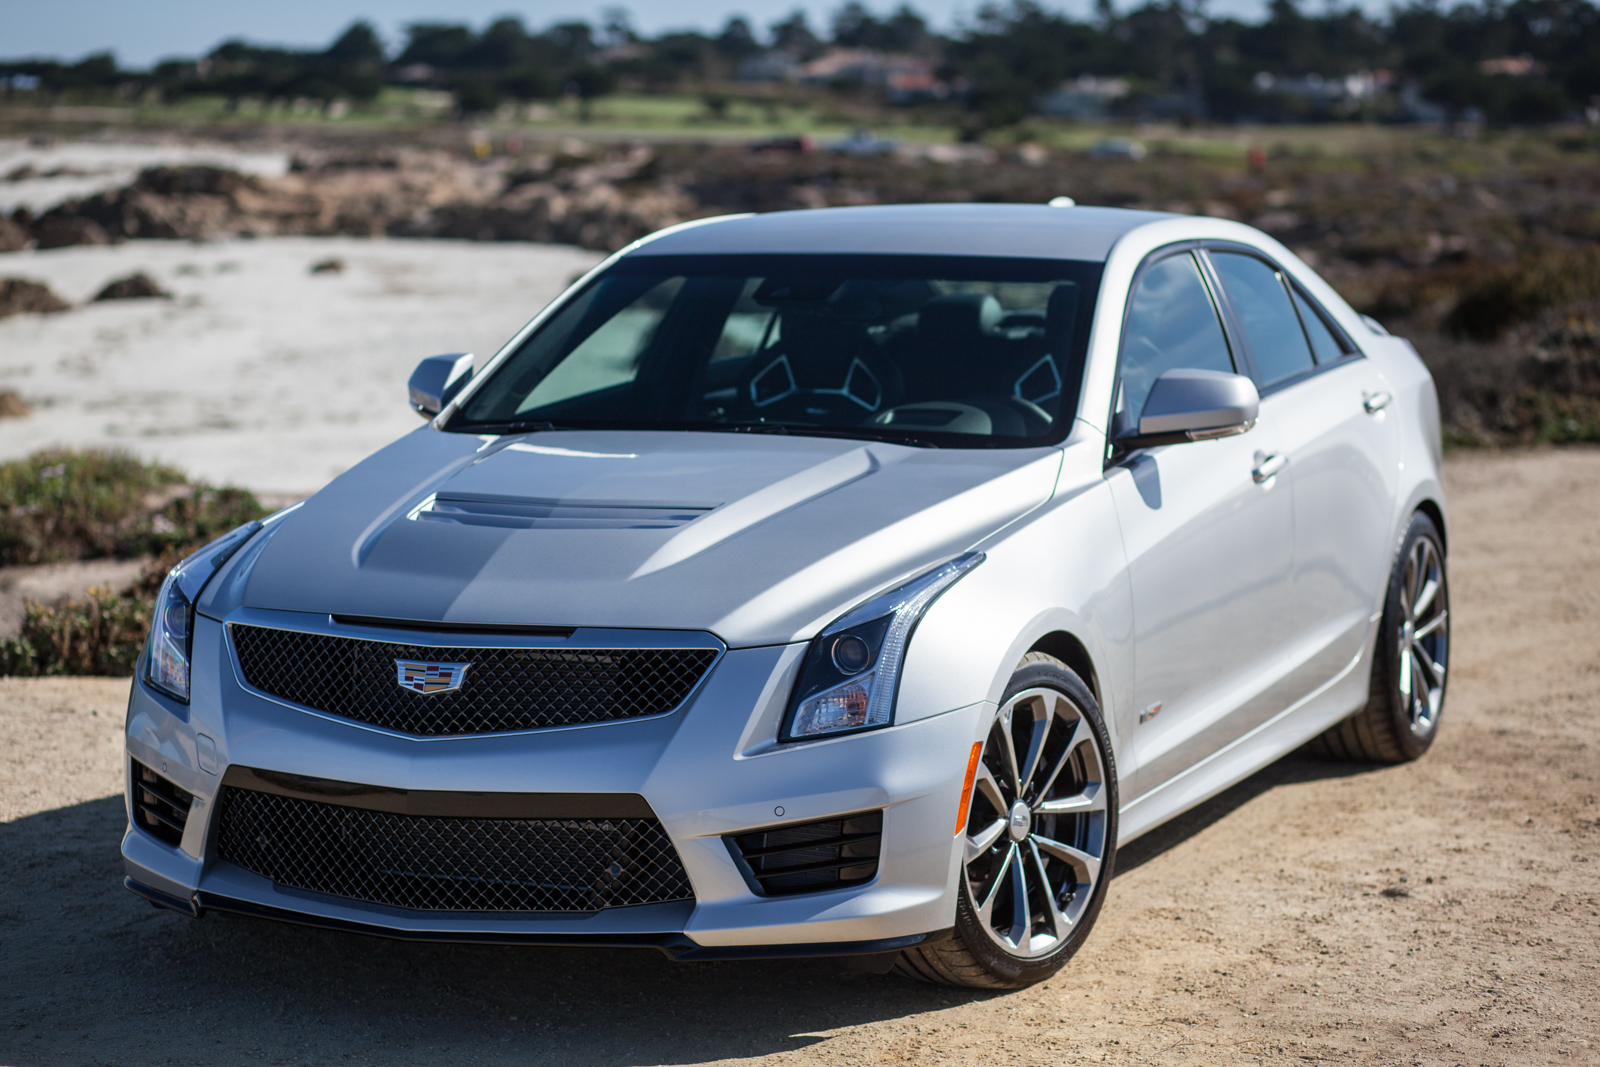 Cadillac Ats Coupe >> 9 Things I Learned About the 2016 Cadillac ATS-V - AutoGuide.com